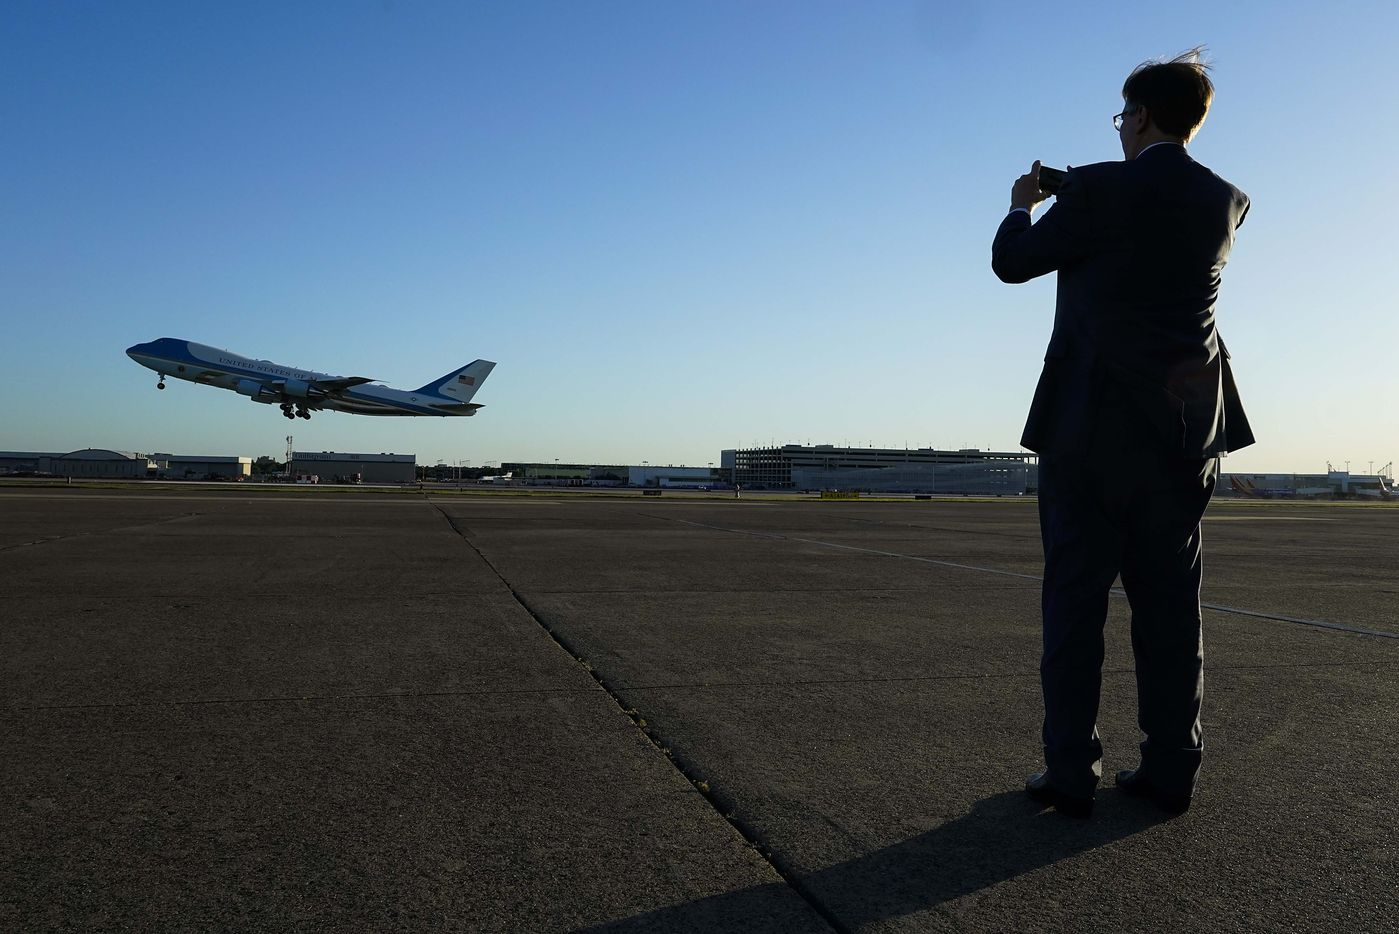 Texas Lt. Gov. Dan Patrick photographs Air Force One as it takes off from Dallas Love Field Airport after President Donald Trump participated in a roundtable conversation about race relations and policing and attended a fundraiser at a private residence on Thursday, June 11, 2020, in Dallas. (Smiley N. Pool/The Dallas Morning News)